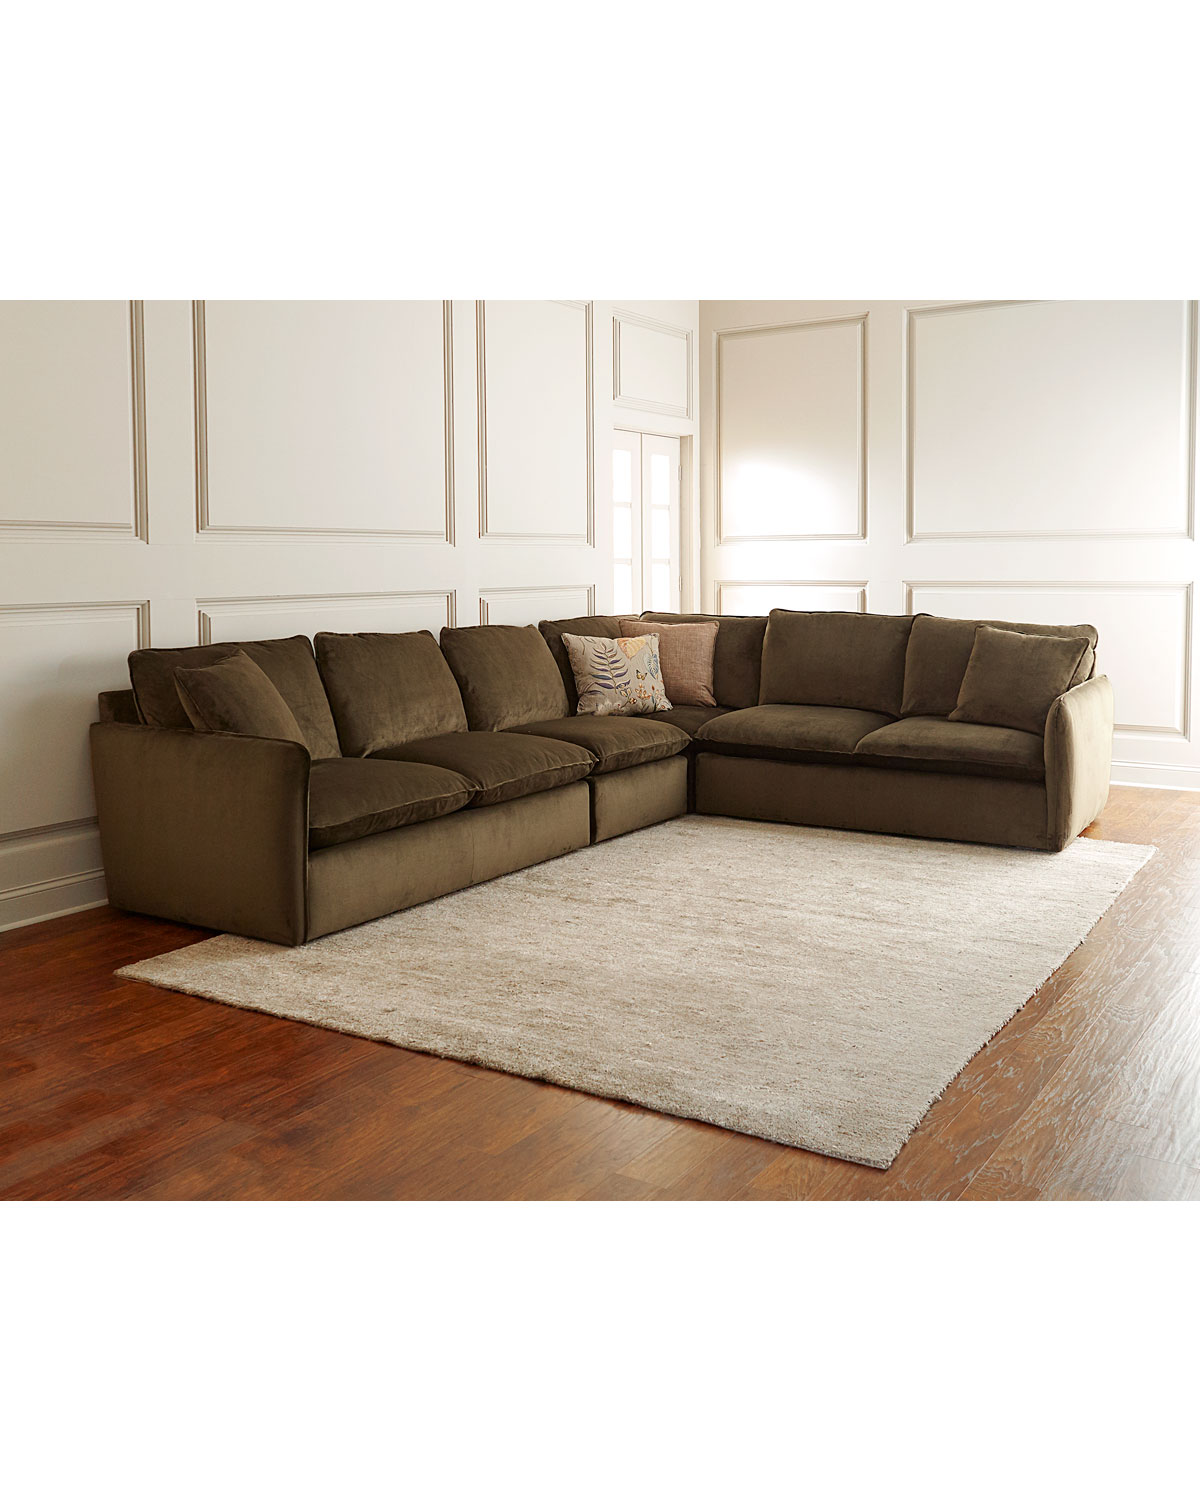 Sam Moorewetherbee 4 Piece Sectional